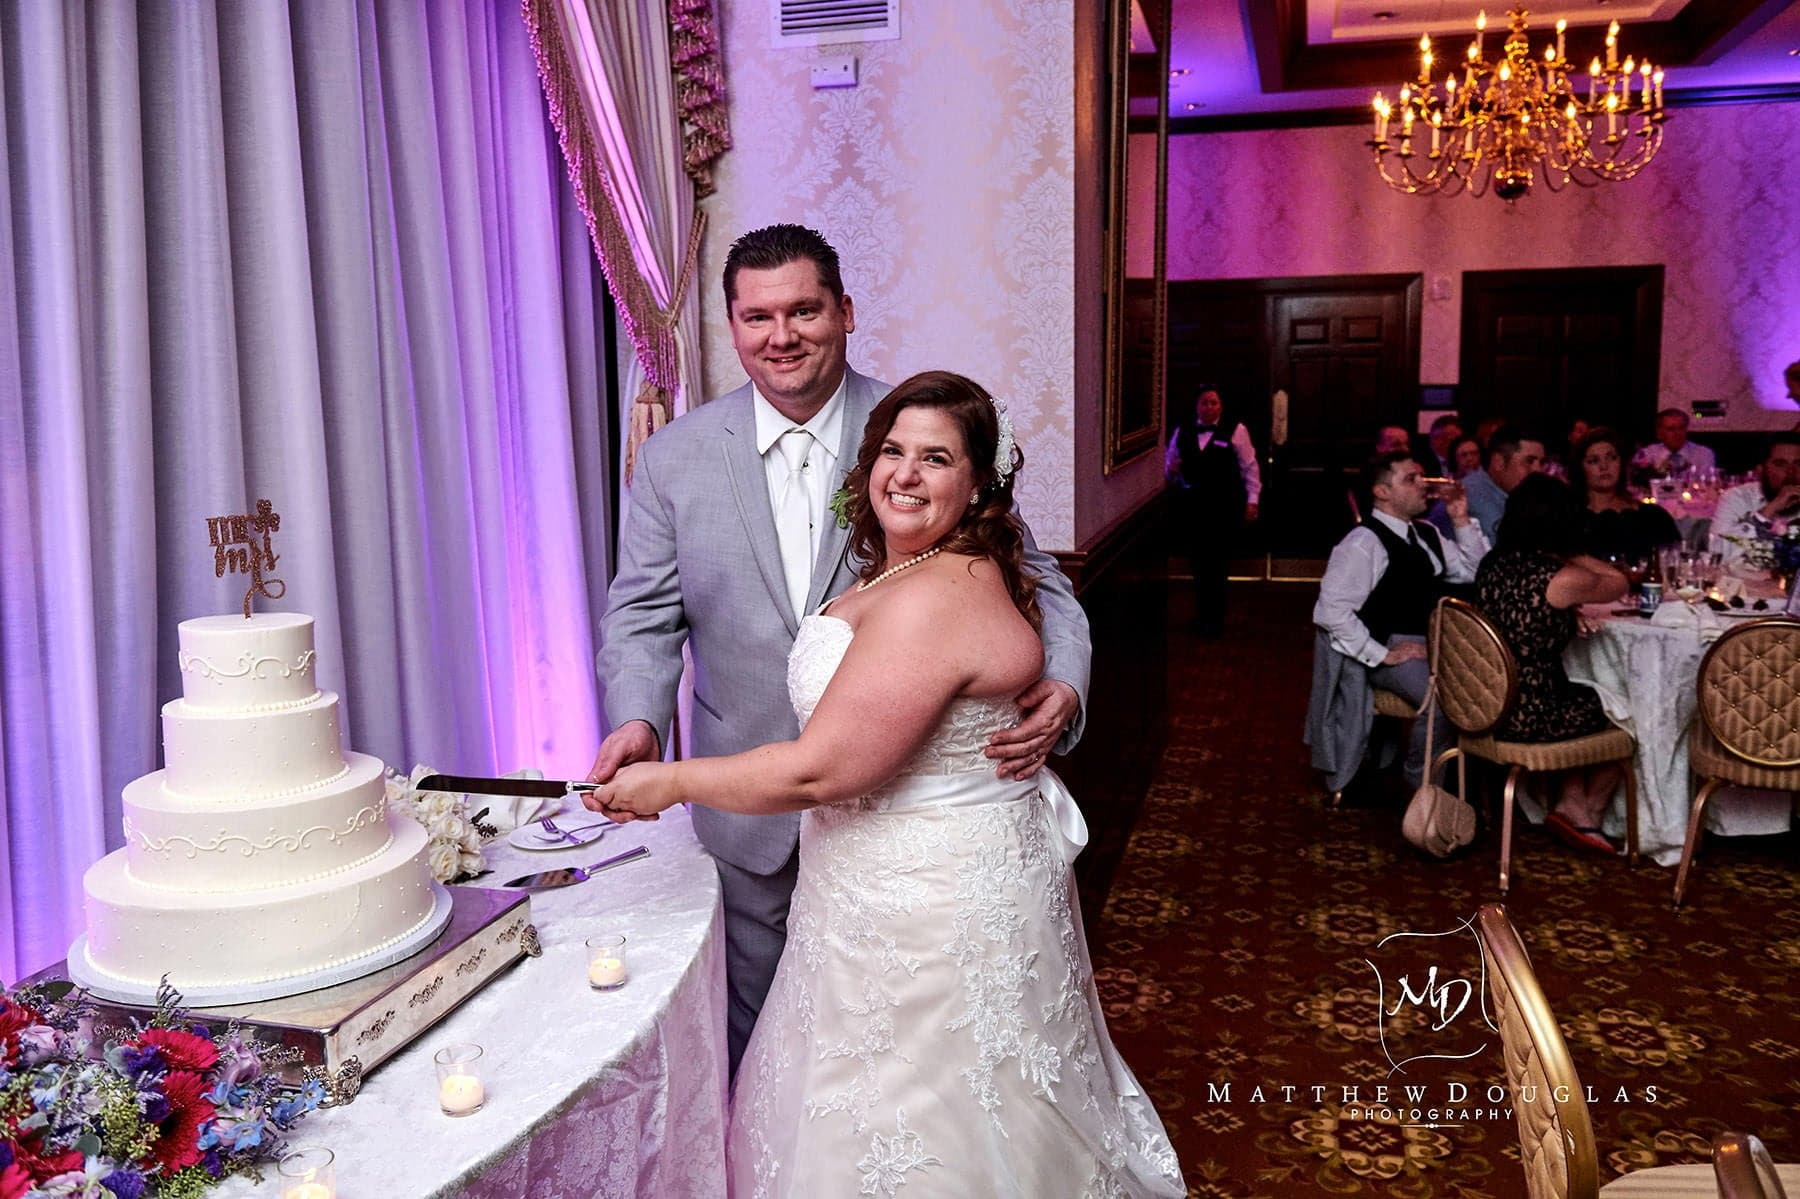 Nassau Inn wedding cake cutting photo